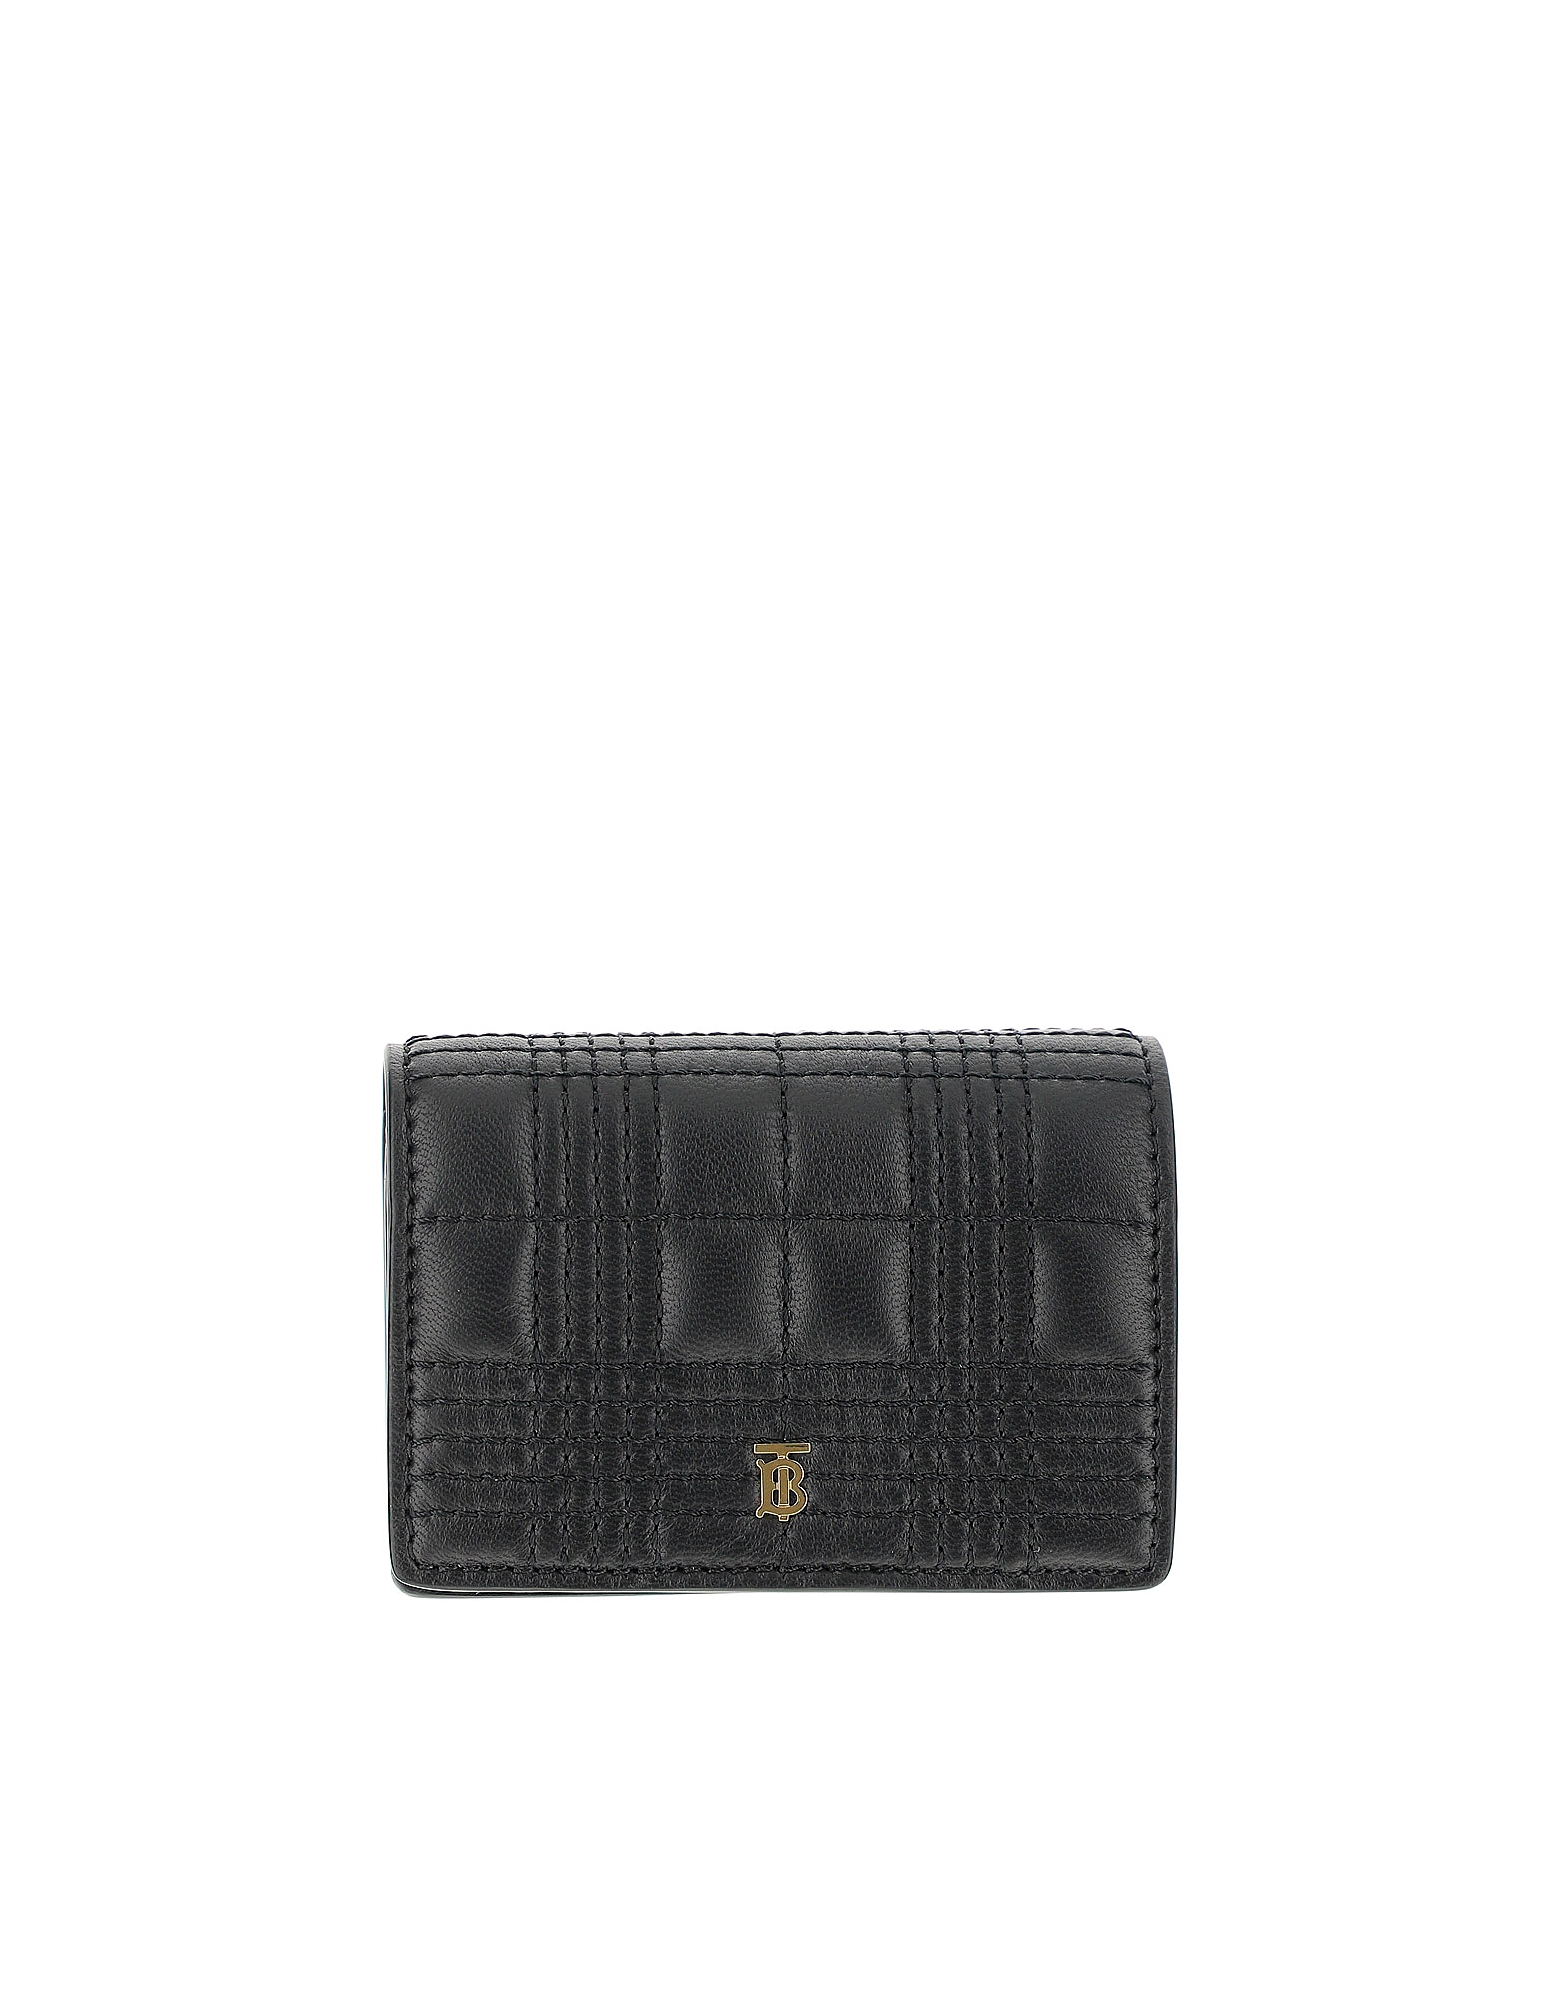 Burberry Designer Wallets, Black Leather Credit Card Holder With Chain